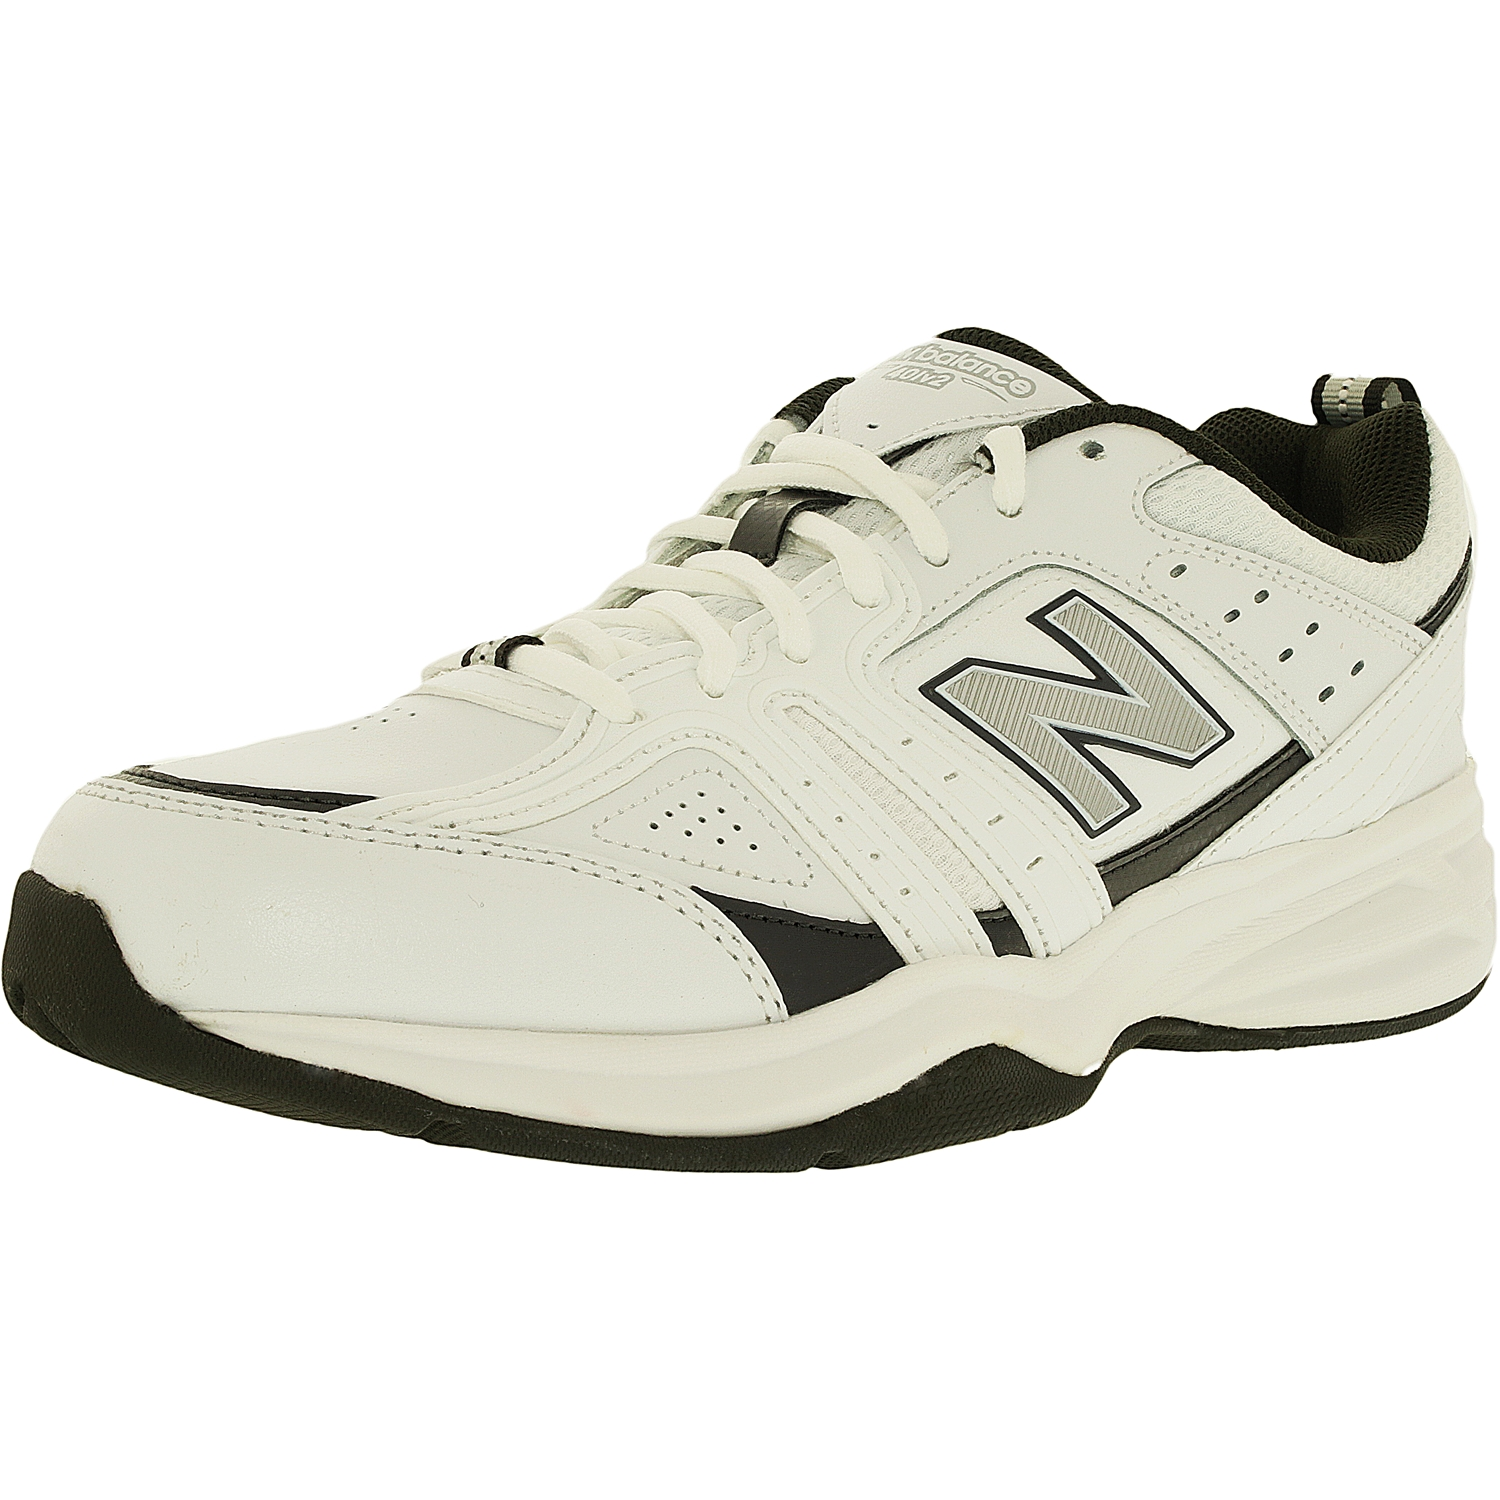 New Balance Men's Training Ankle-High Leather Cross Trainer Shoe by New Balance